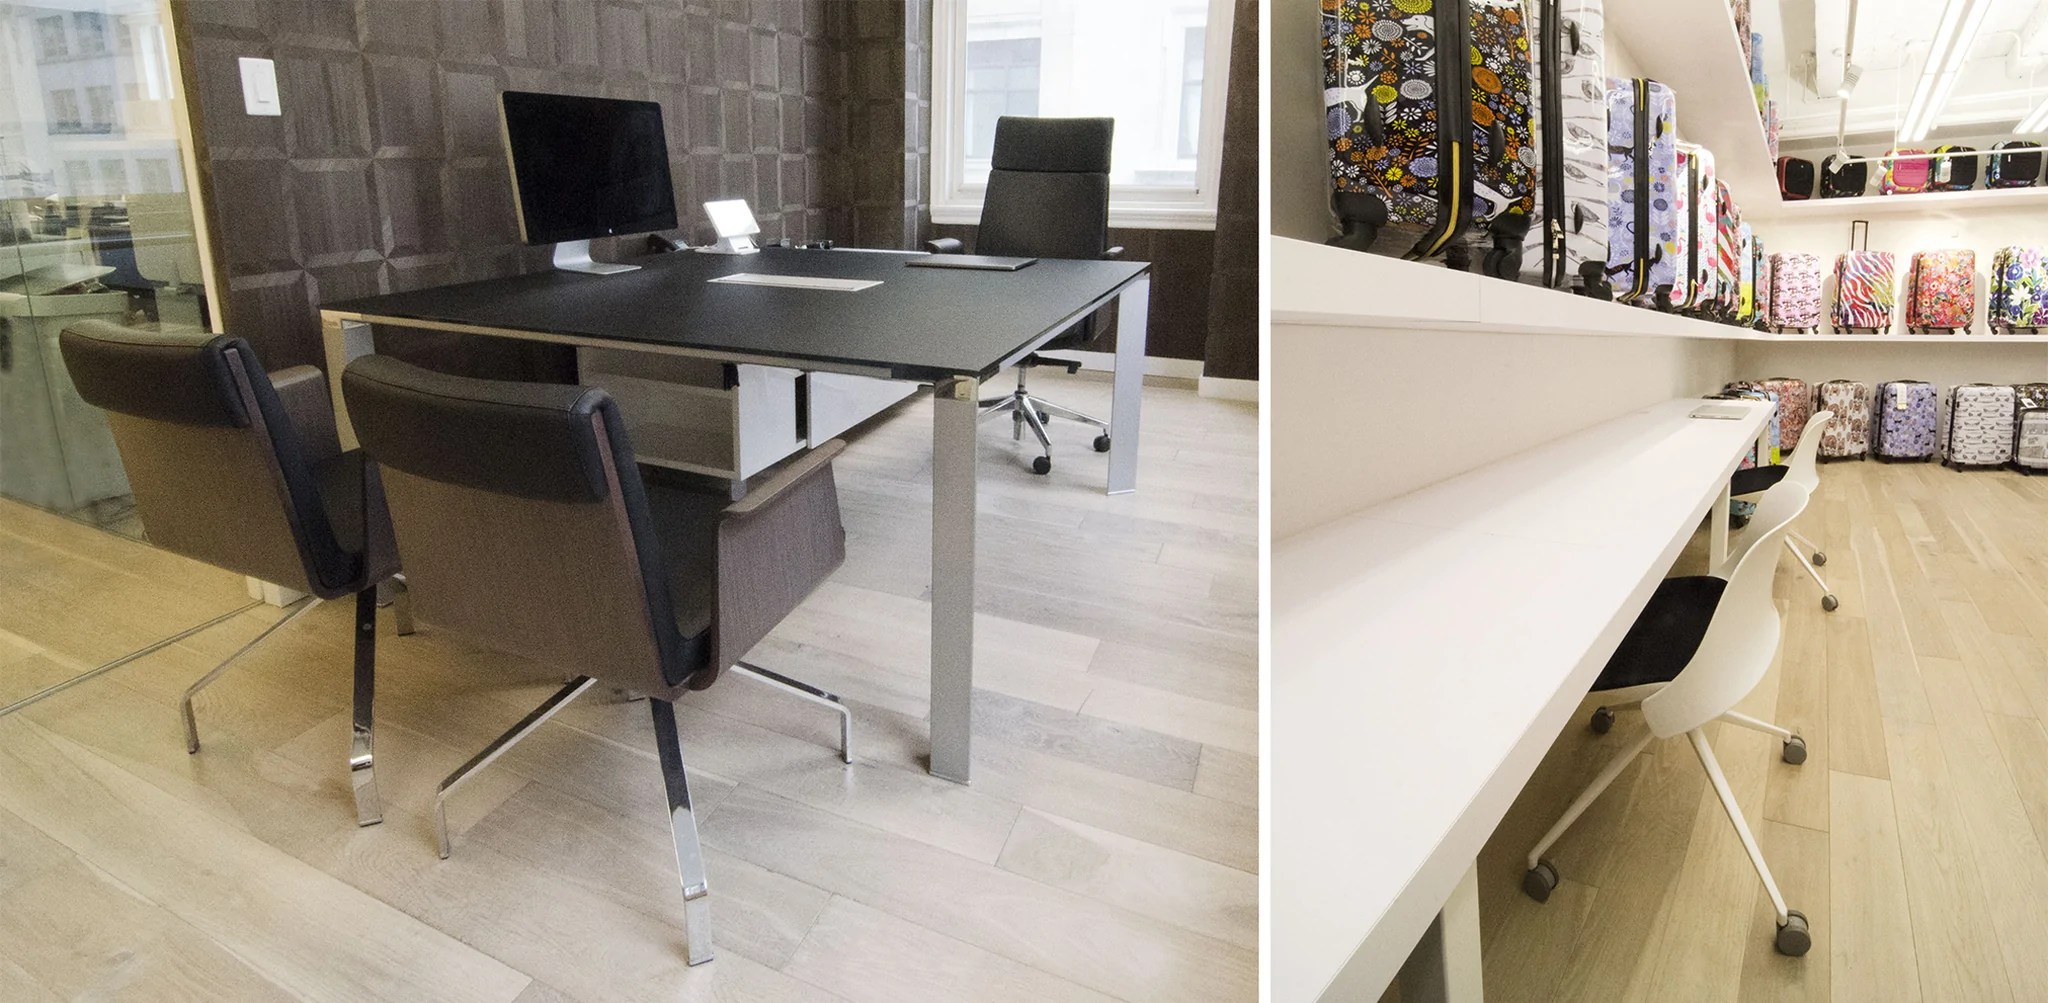 Designer Office Furniture New Office Design Projects At Ofh Office Furniture Heaven